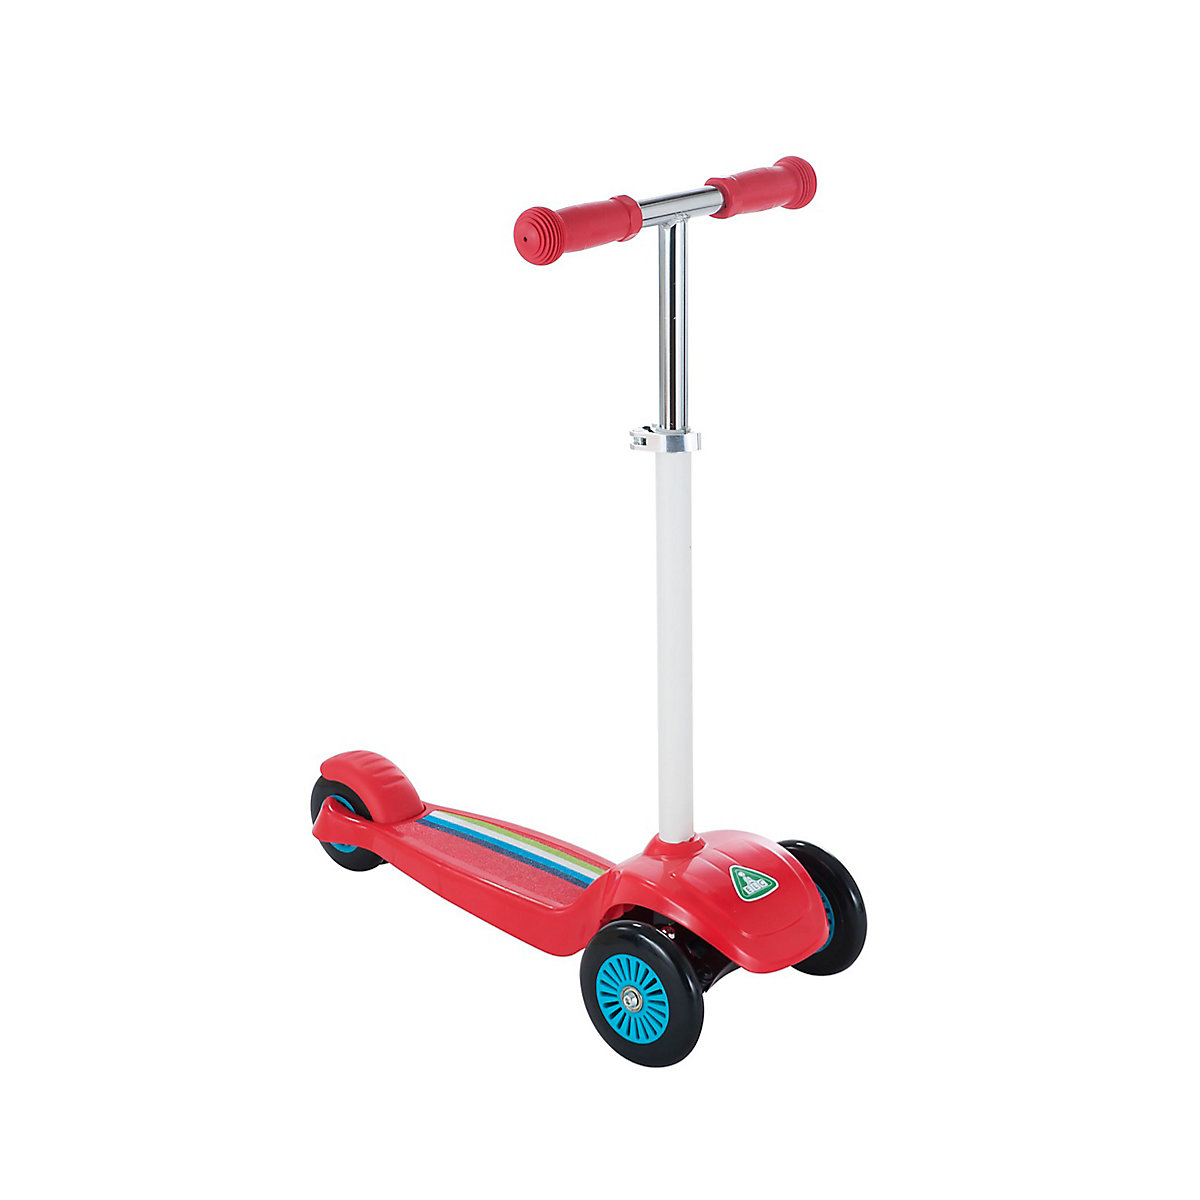 New ELC Boys and Girls Stripy Scooter Toy From 3 years - Scooter Gifts